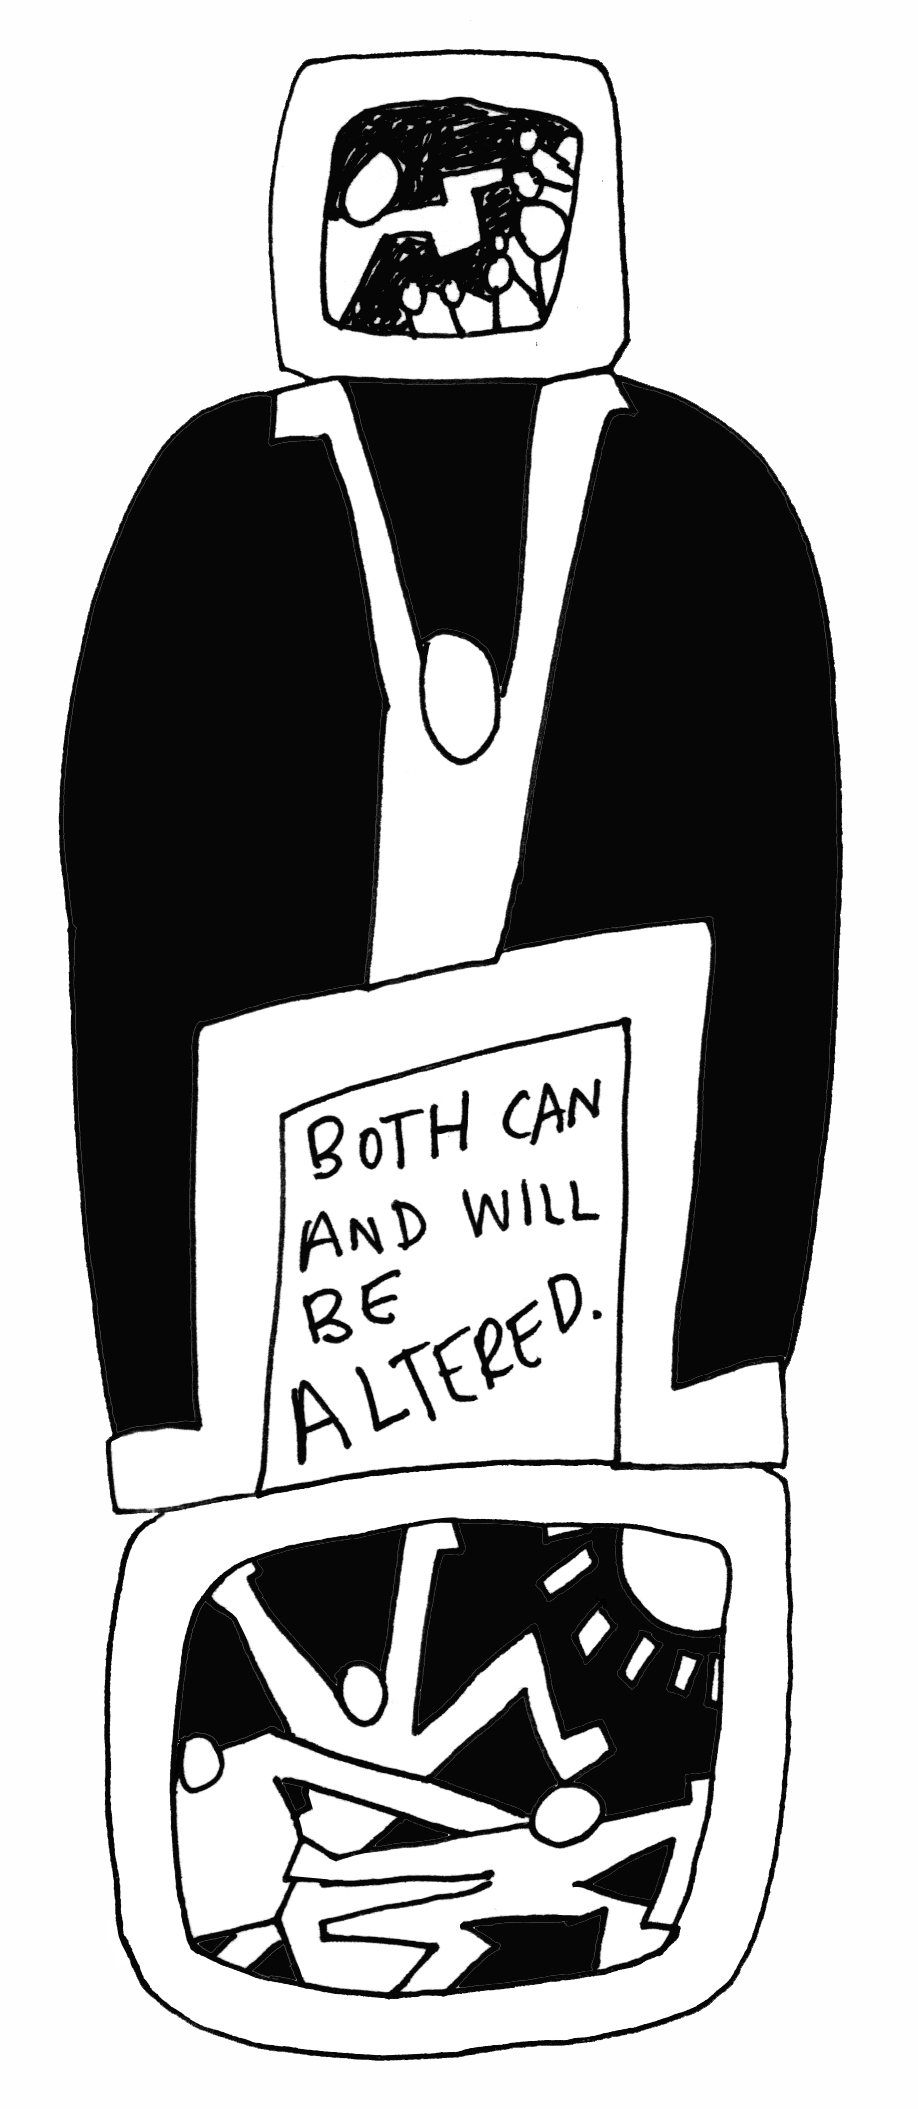 and both can and will be altered-c.jpg